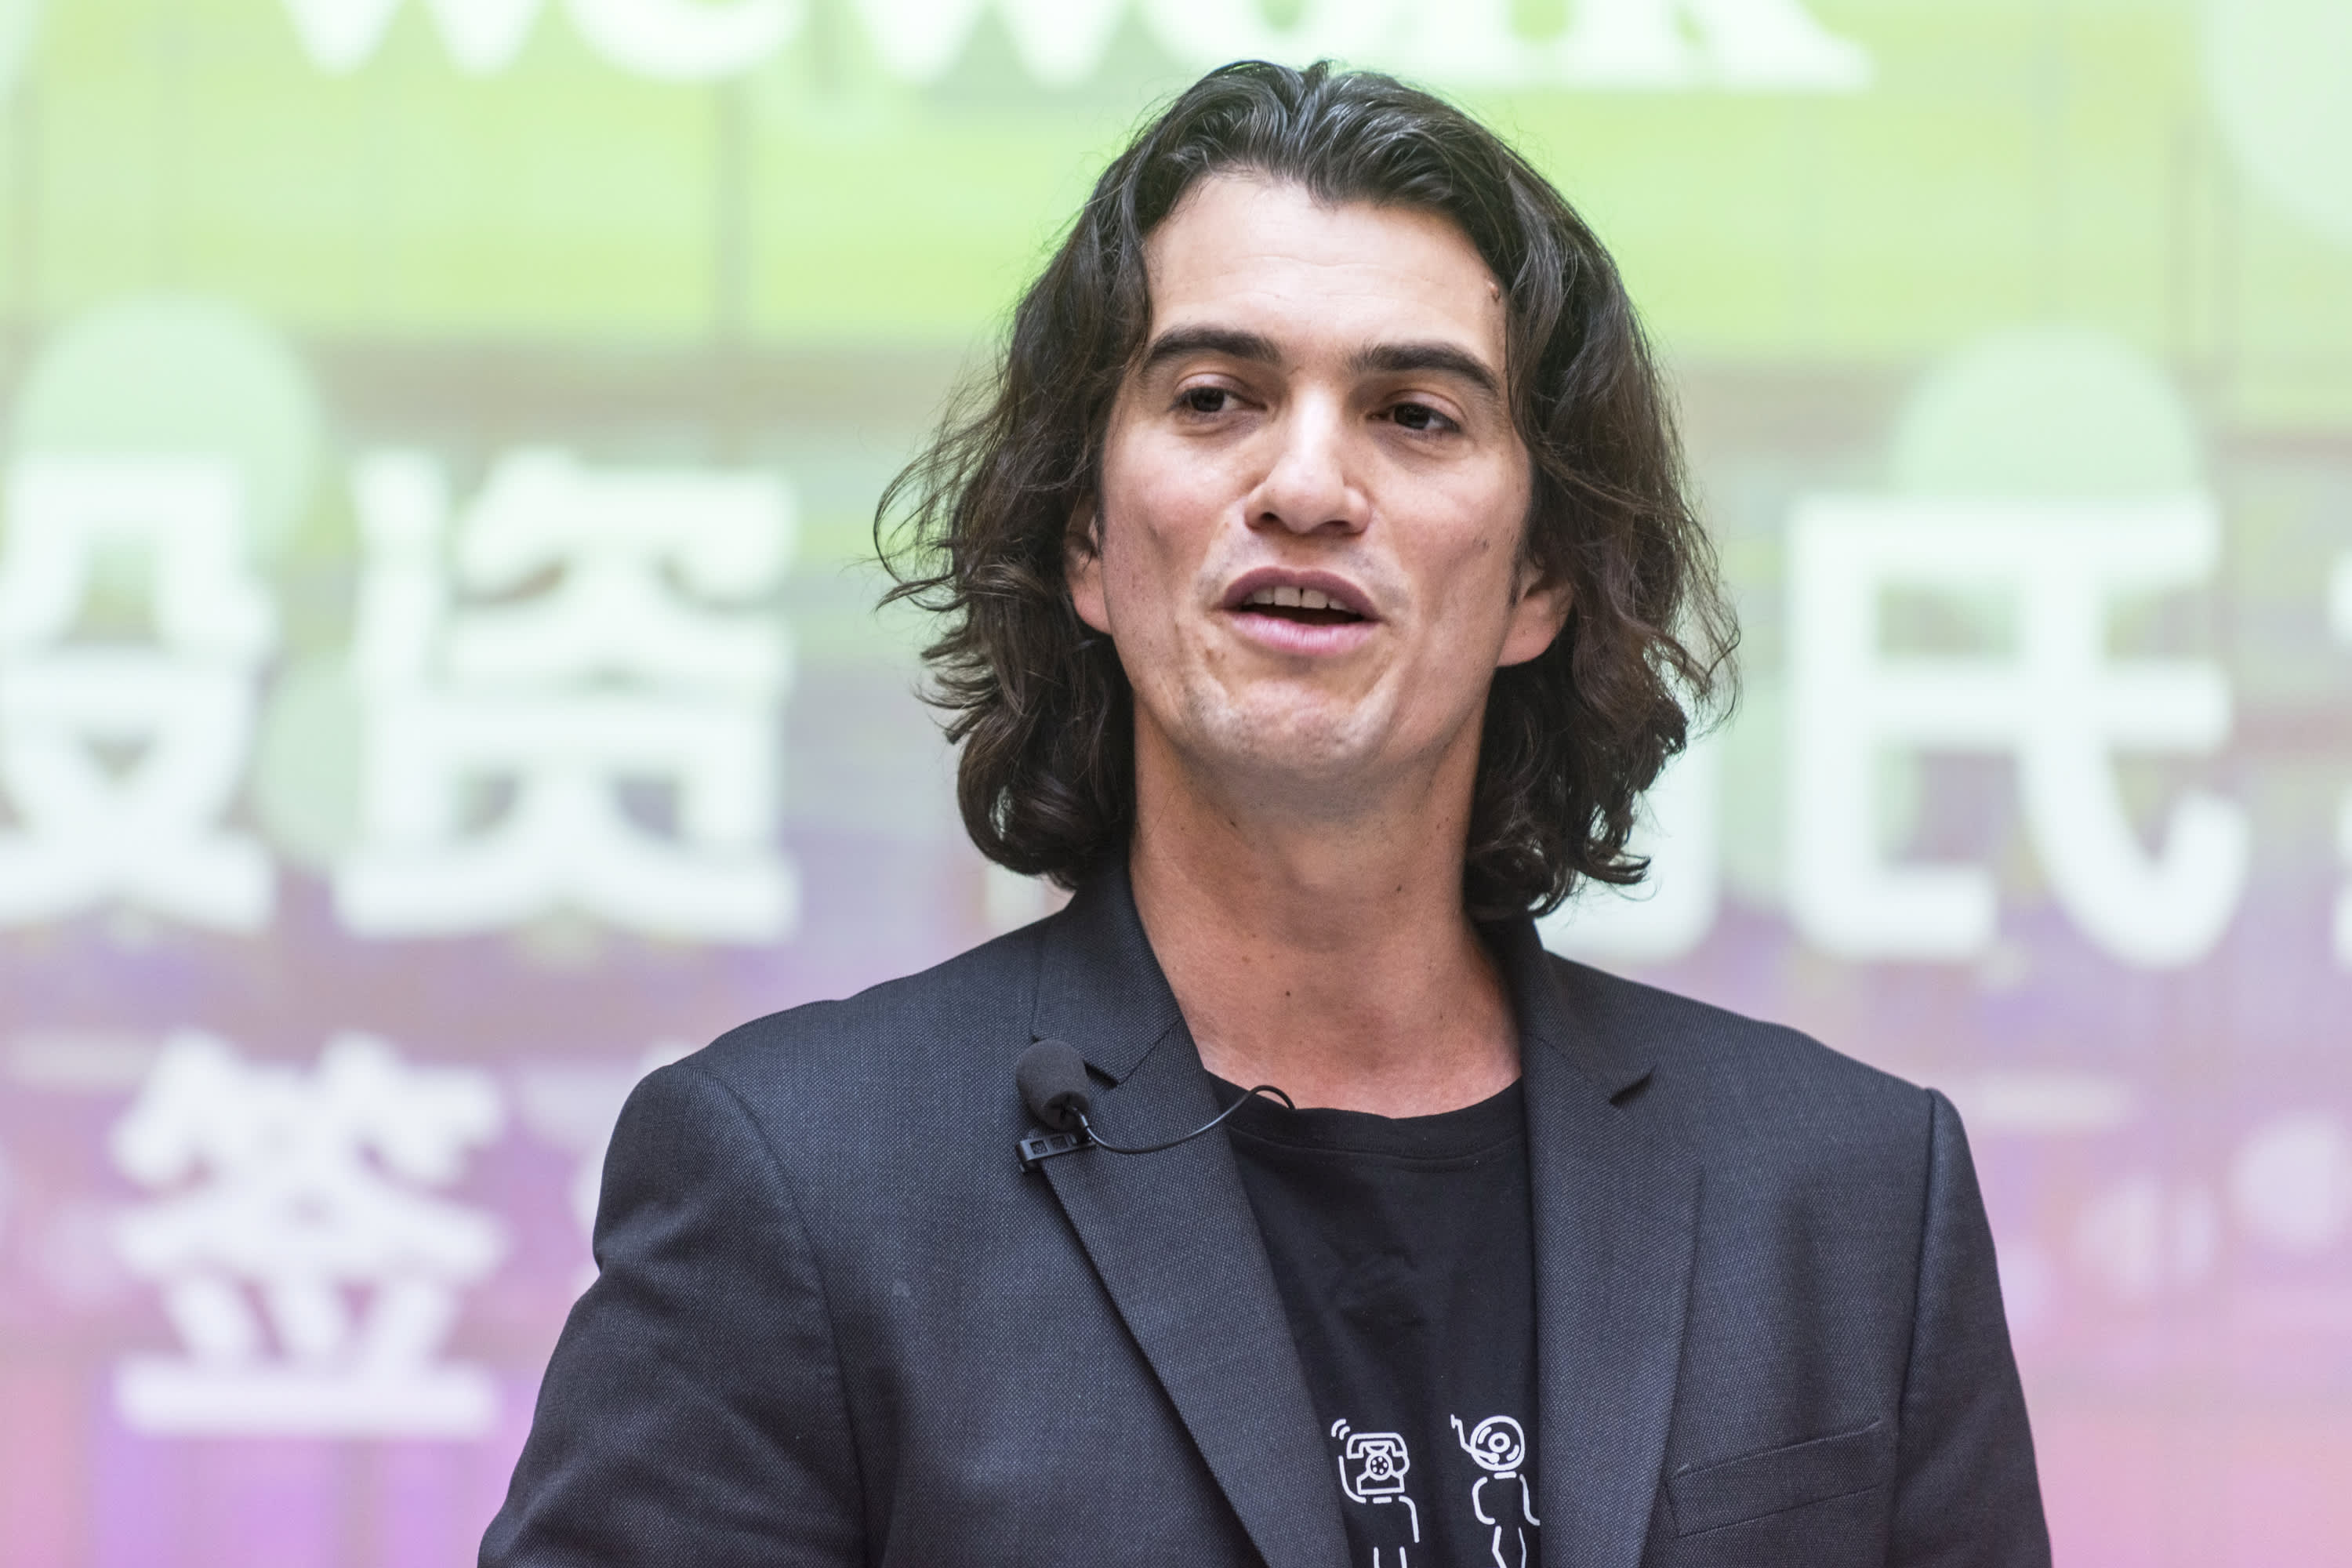 Investors want tech start-ups to prove they'll be profitable after WeWork's failed IPO